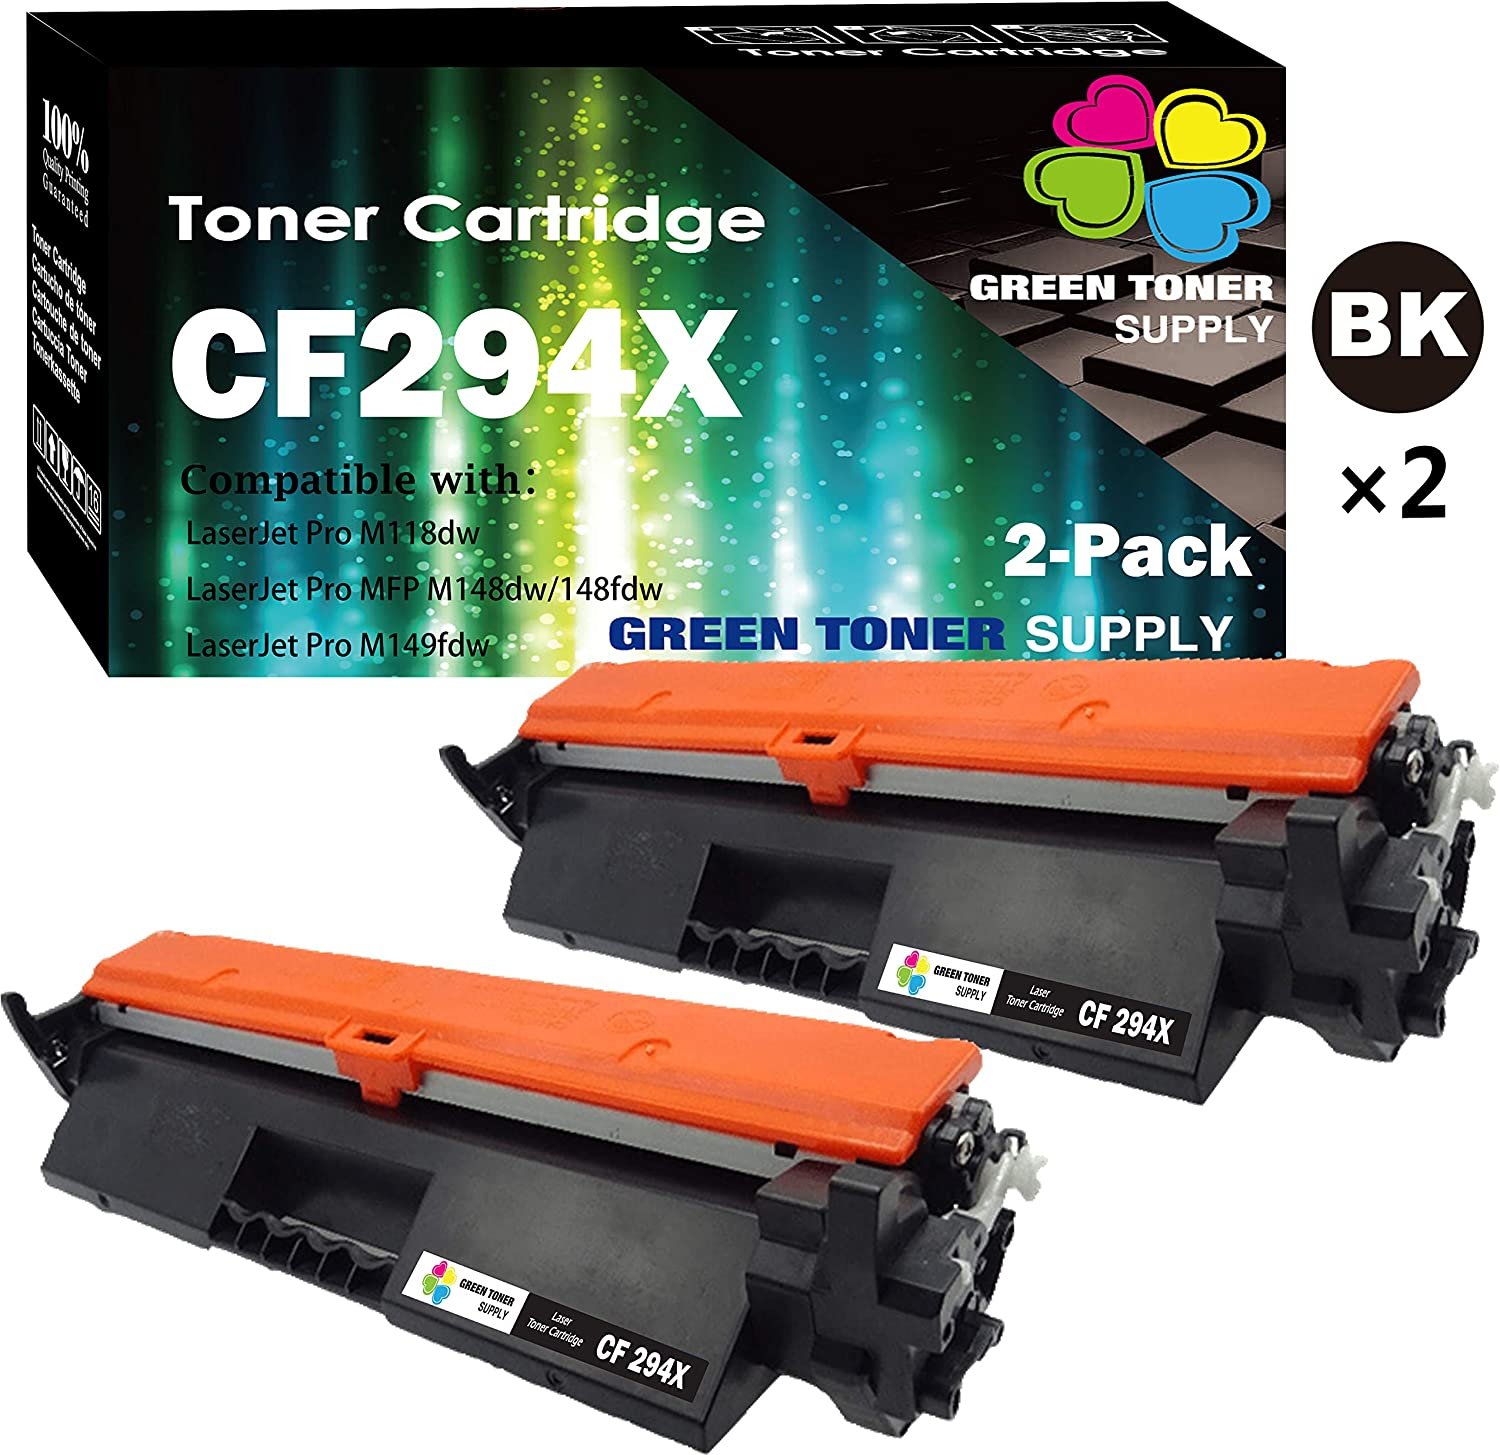 (2-Pack, Black, High Yield) GTS Compatible HP 94X 294X CF294X Toner Cartridge Used for HP Laserjet Pro M118dw M148dw M148fdw Laserjet M118 Laserjet M148 Series Printer